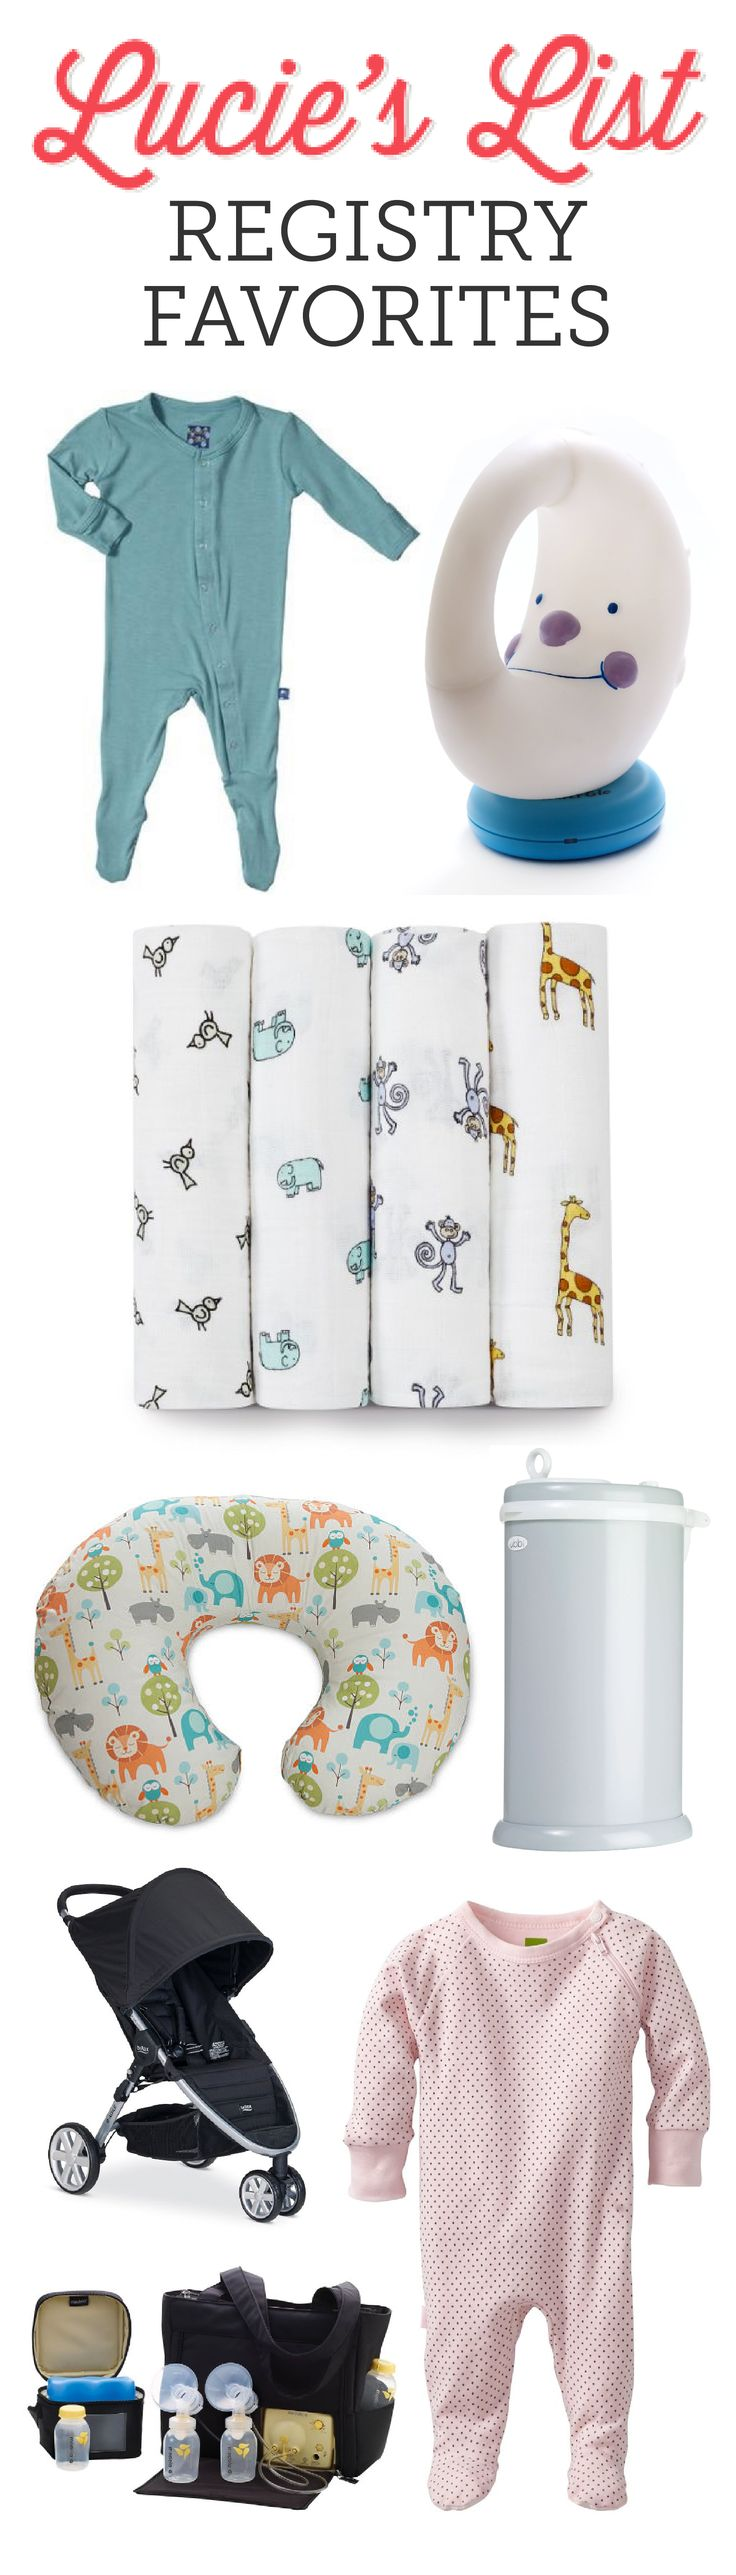 """""""These are our all-time favorite baby items for those with a middle-of-the-road budget. The American Baby registry is for the everyday mom seeking high-quality, long-lasting items for non-outrageous prices."""" ~ Meg at Lucie's List"""